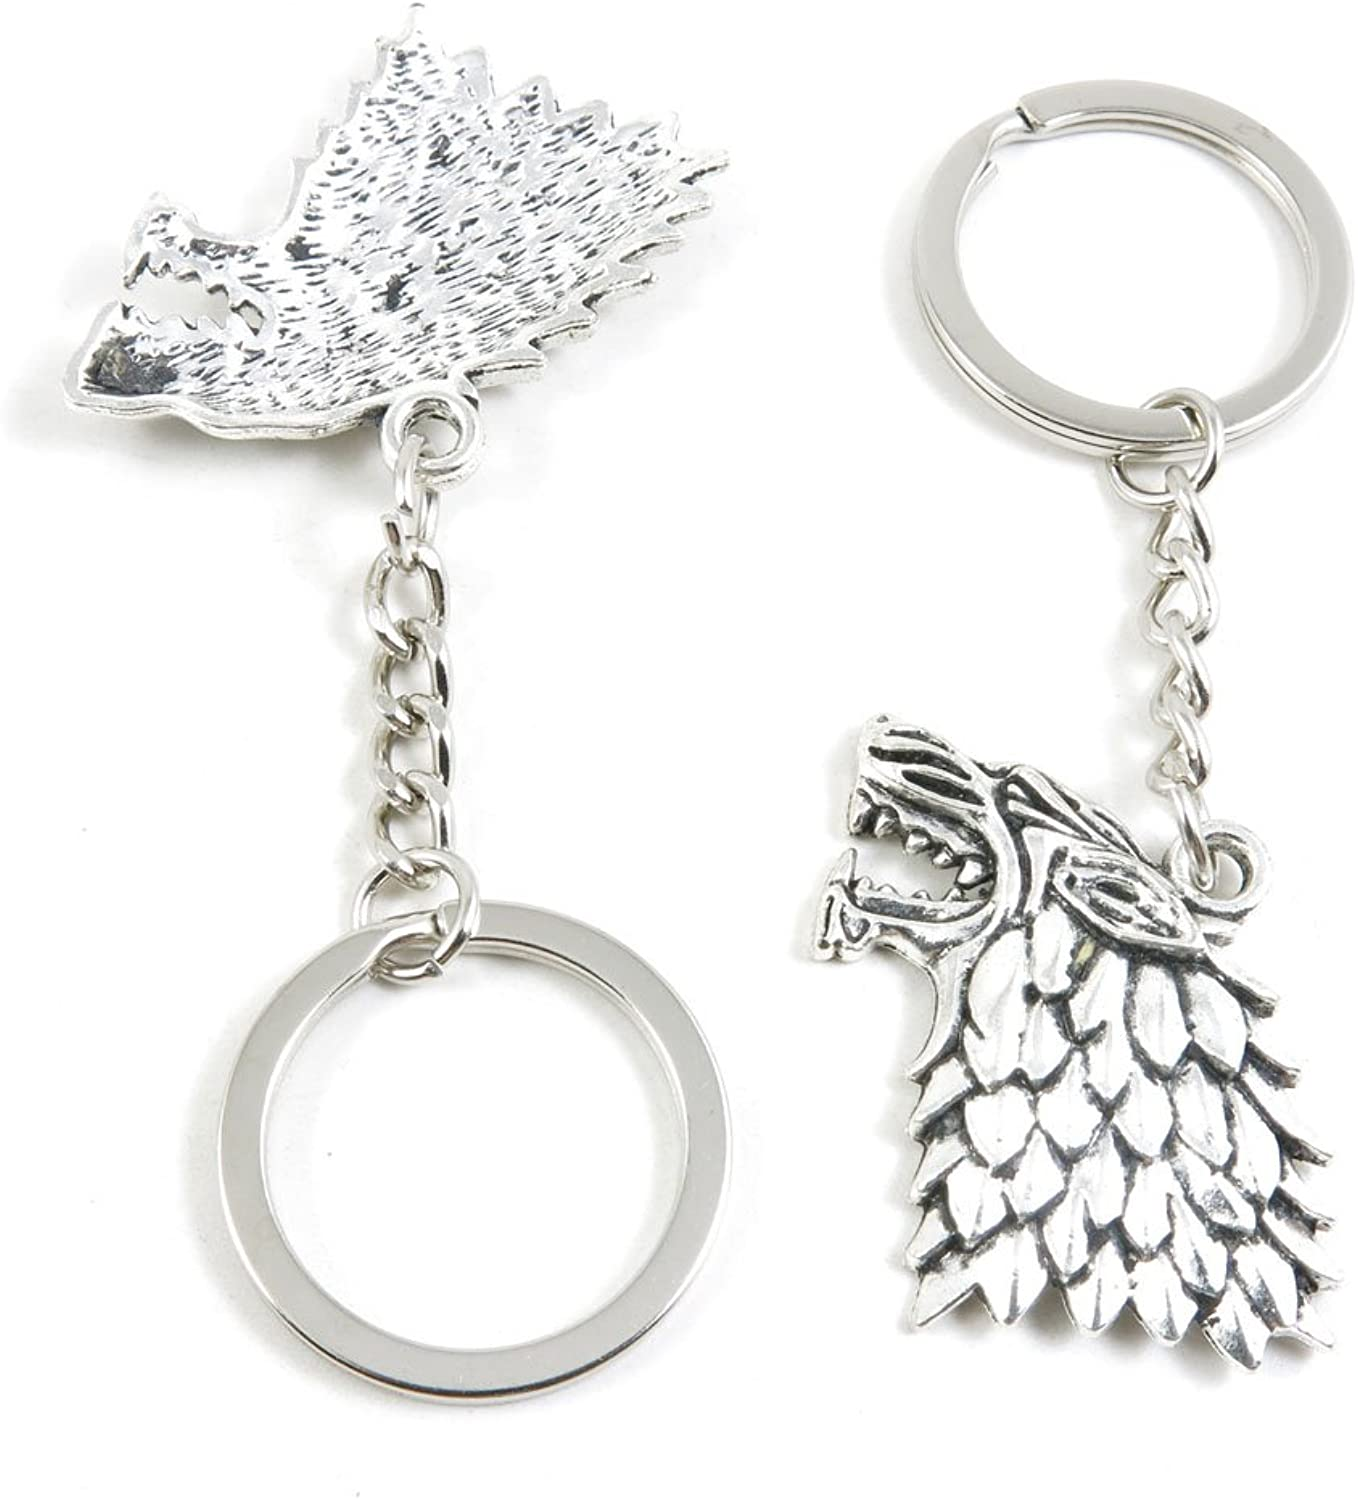 120 Pieces Fashion Jewelry Keyring Keychain Door Car Key Tag Ring Chain Supplier Supply Wholesale Bulk Lots F5UH1 Wolf Head